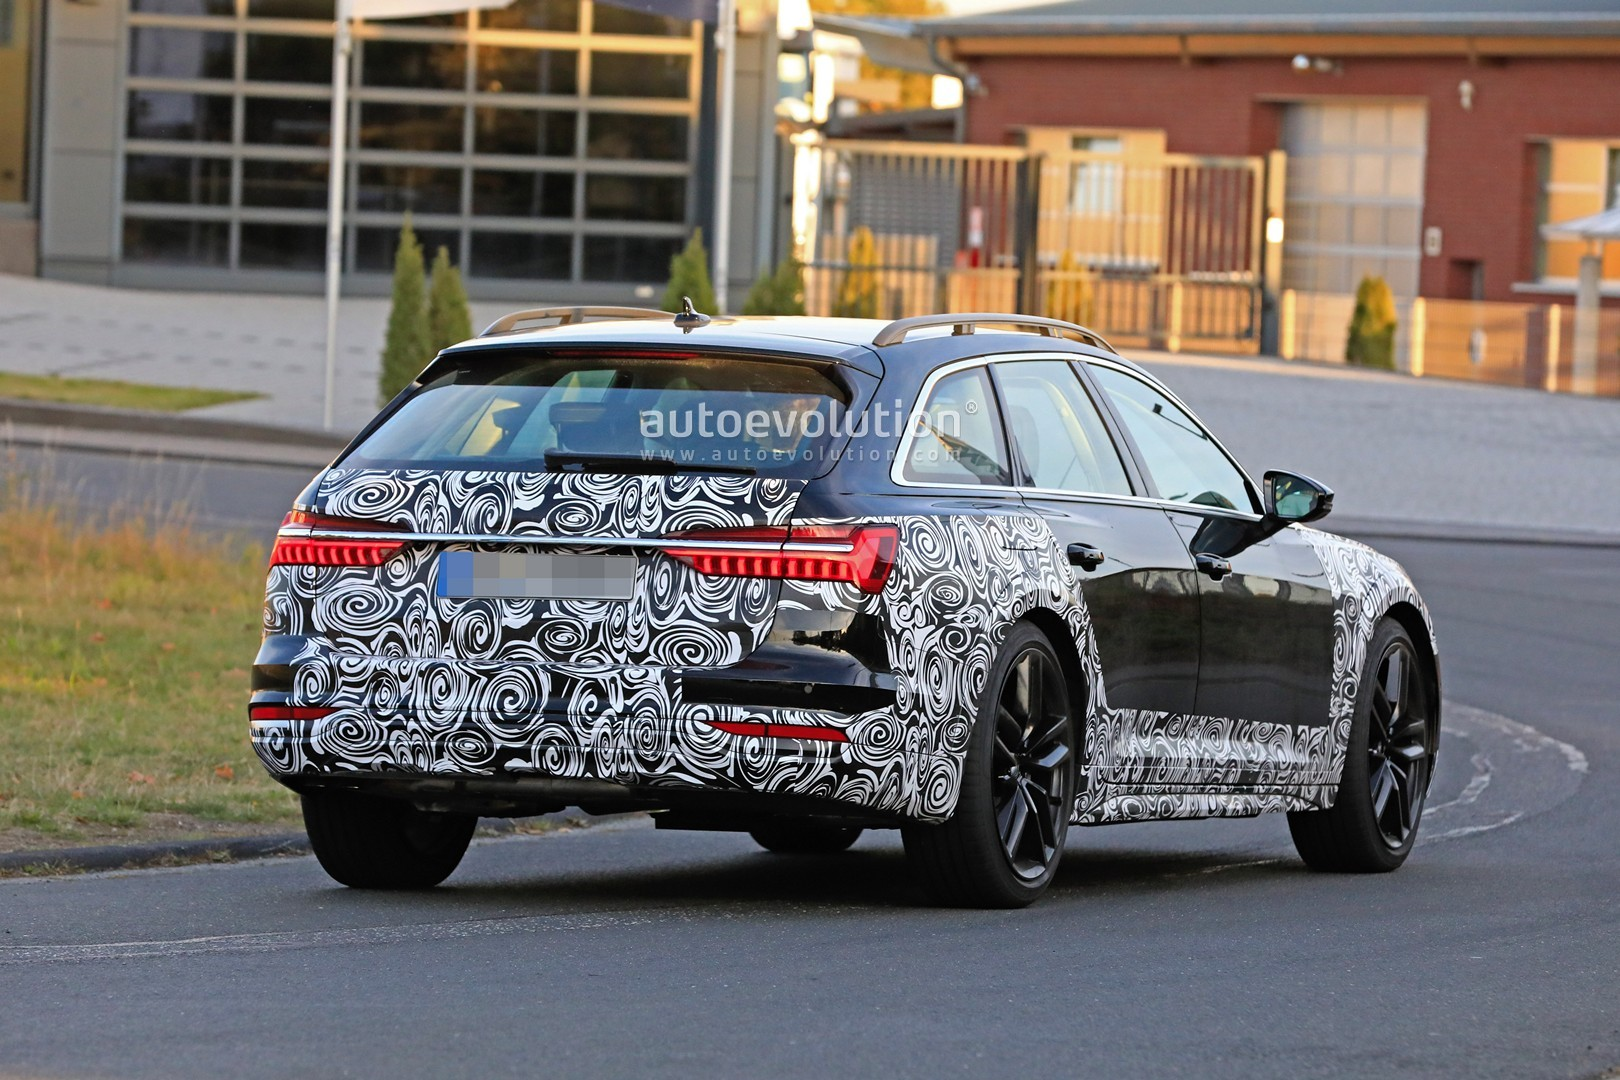 2017 - [Audi] A6 Berline & Avant [C8] - Page 10 2020-audi-a6-allroad-quattro-spied-testing-with-mild-off-road-body-kit_9